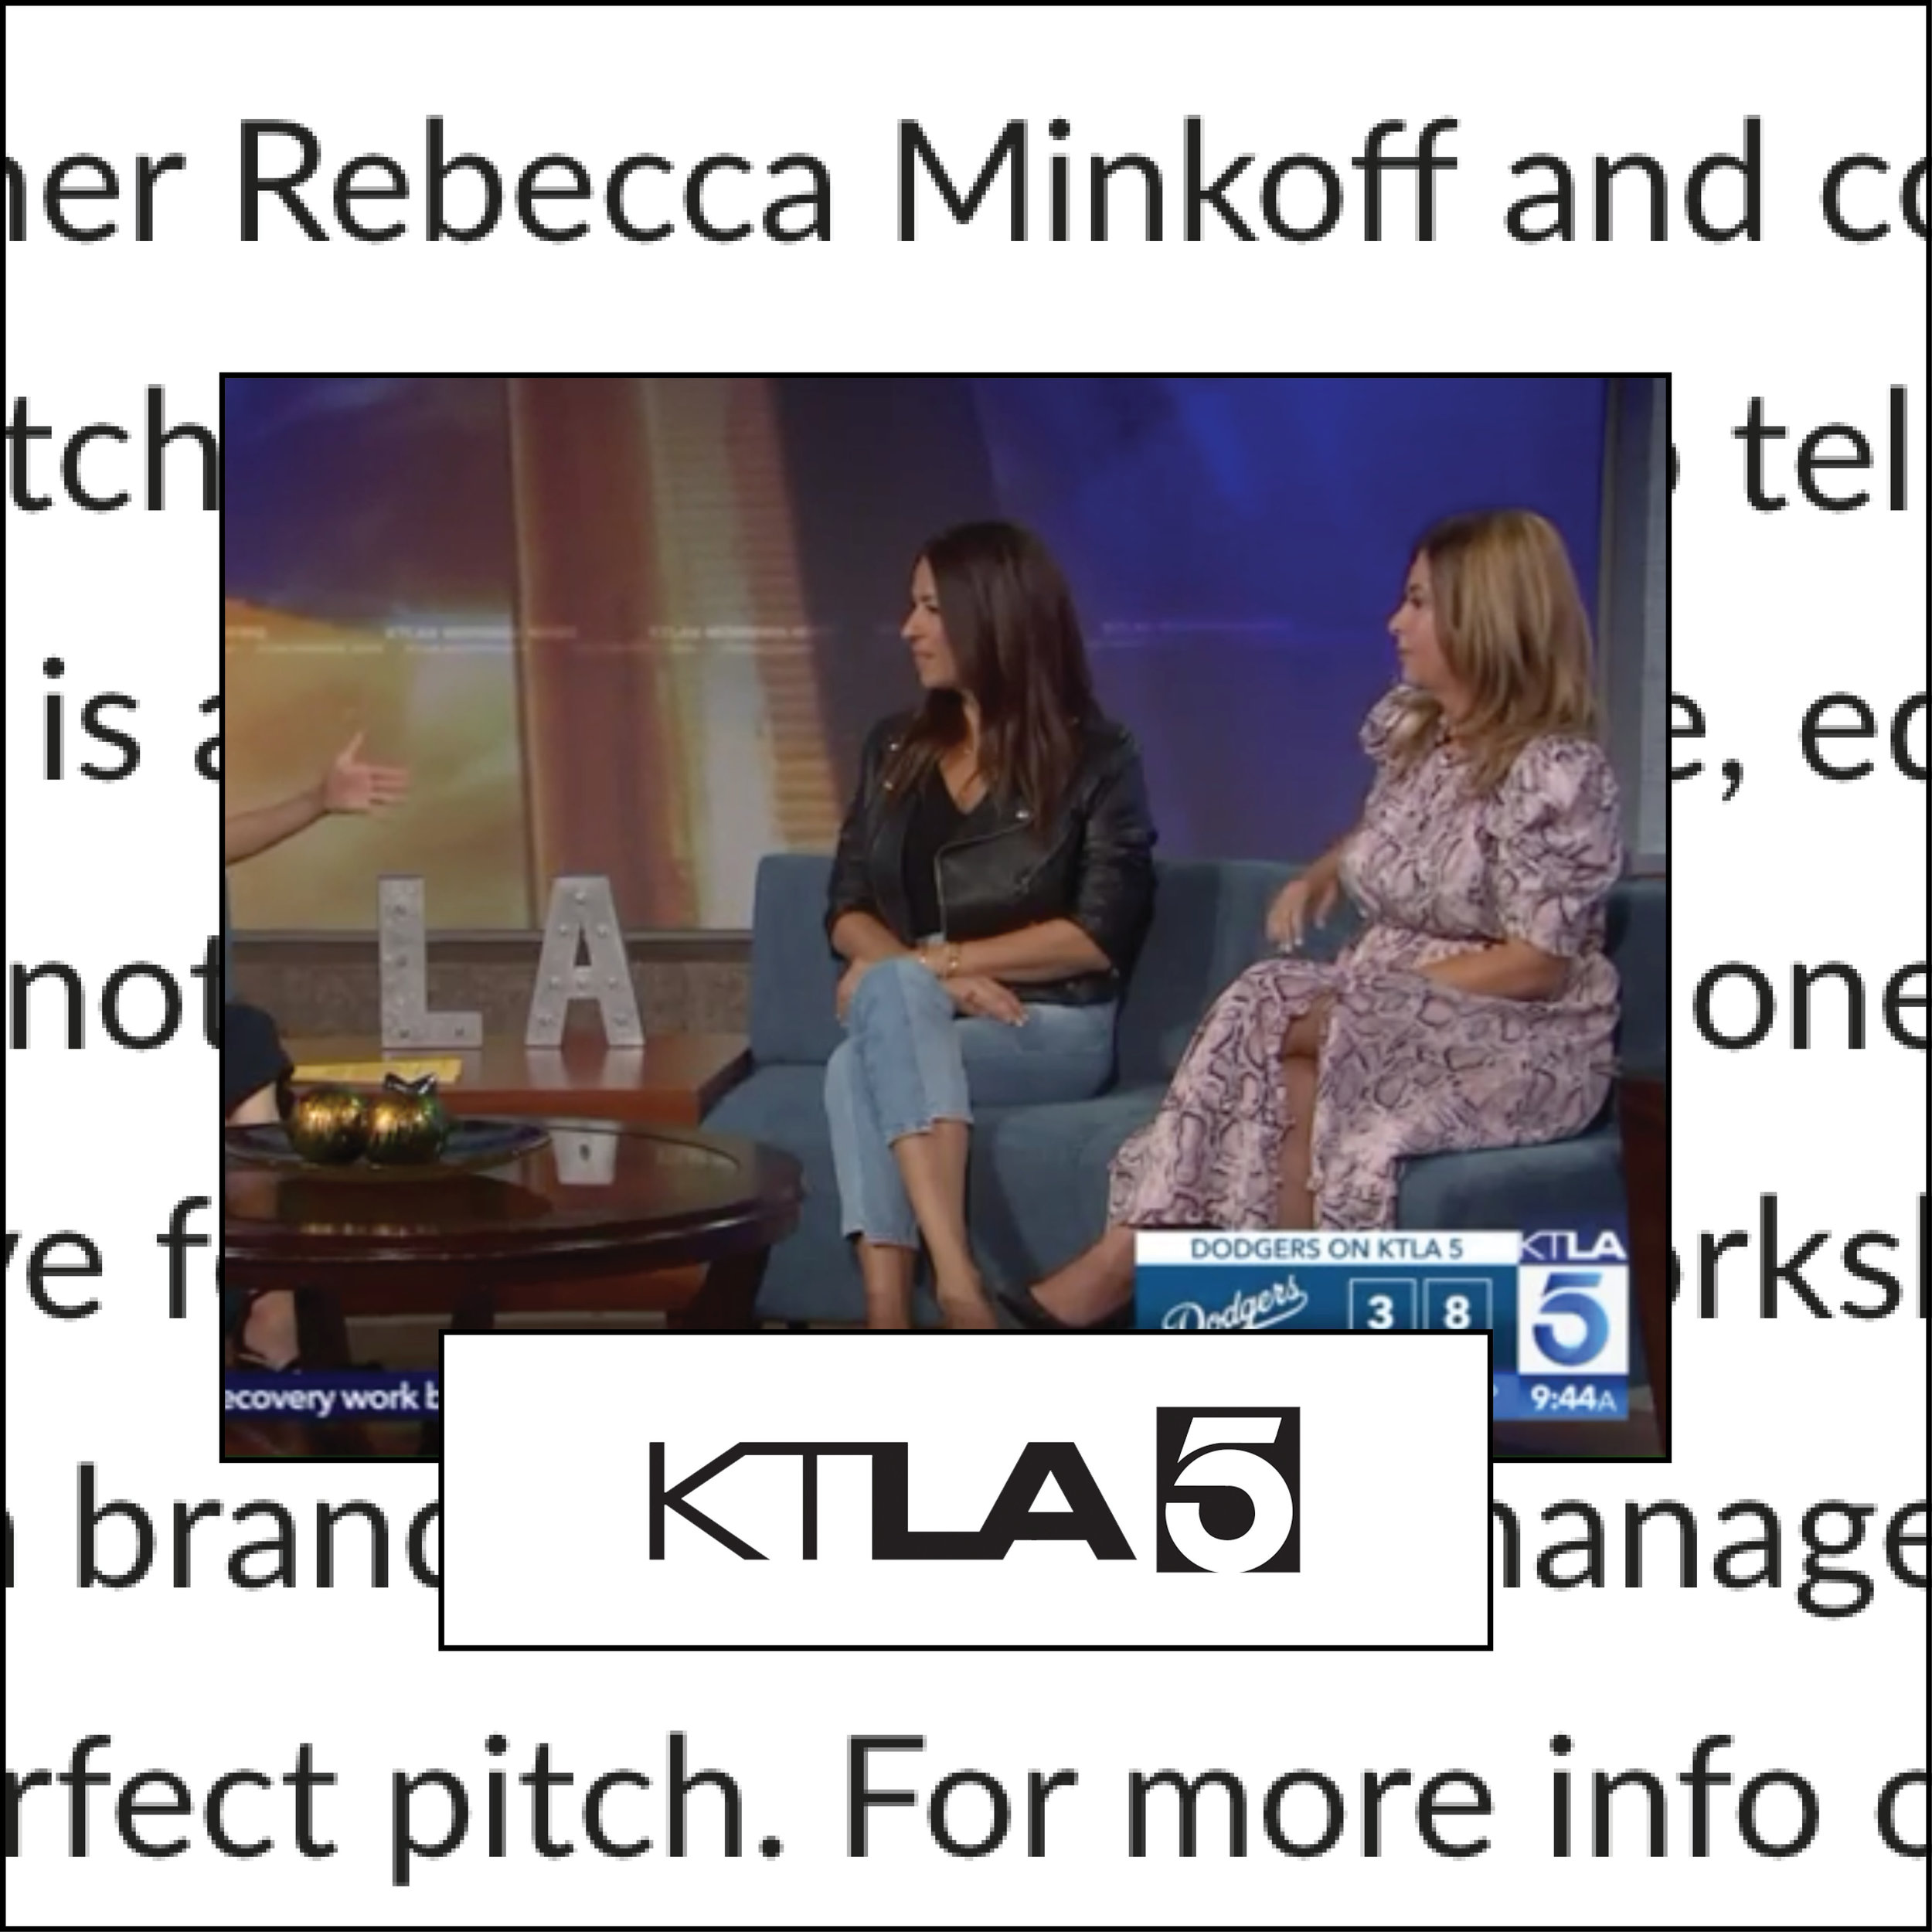 Workshop: A Day for Female Founders With Fashion Designer Rebecca Minkoff & FabFitFun's Katie Rosen Kitchens